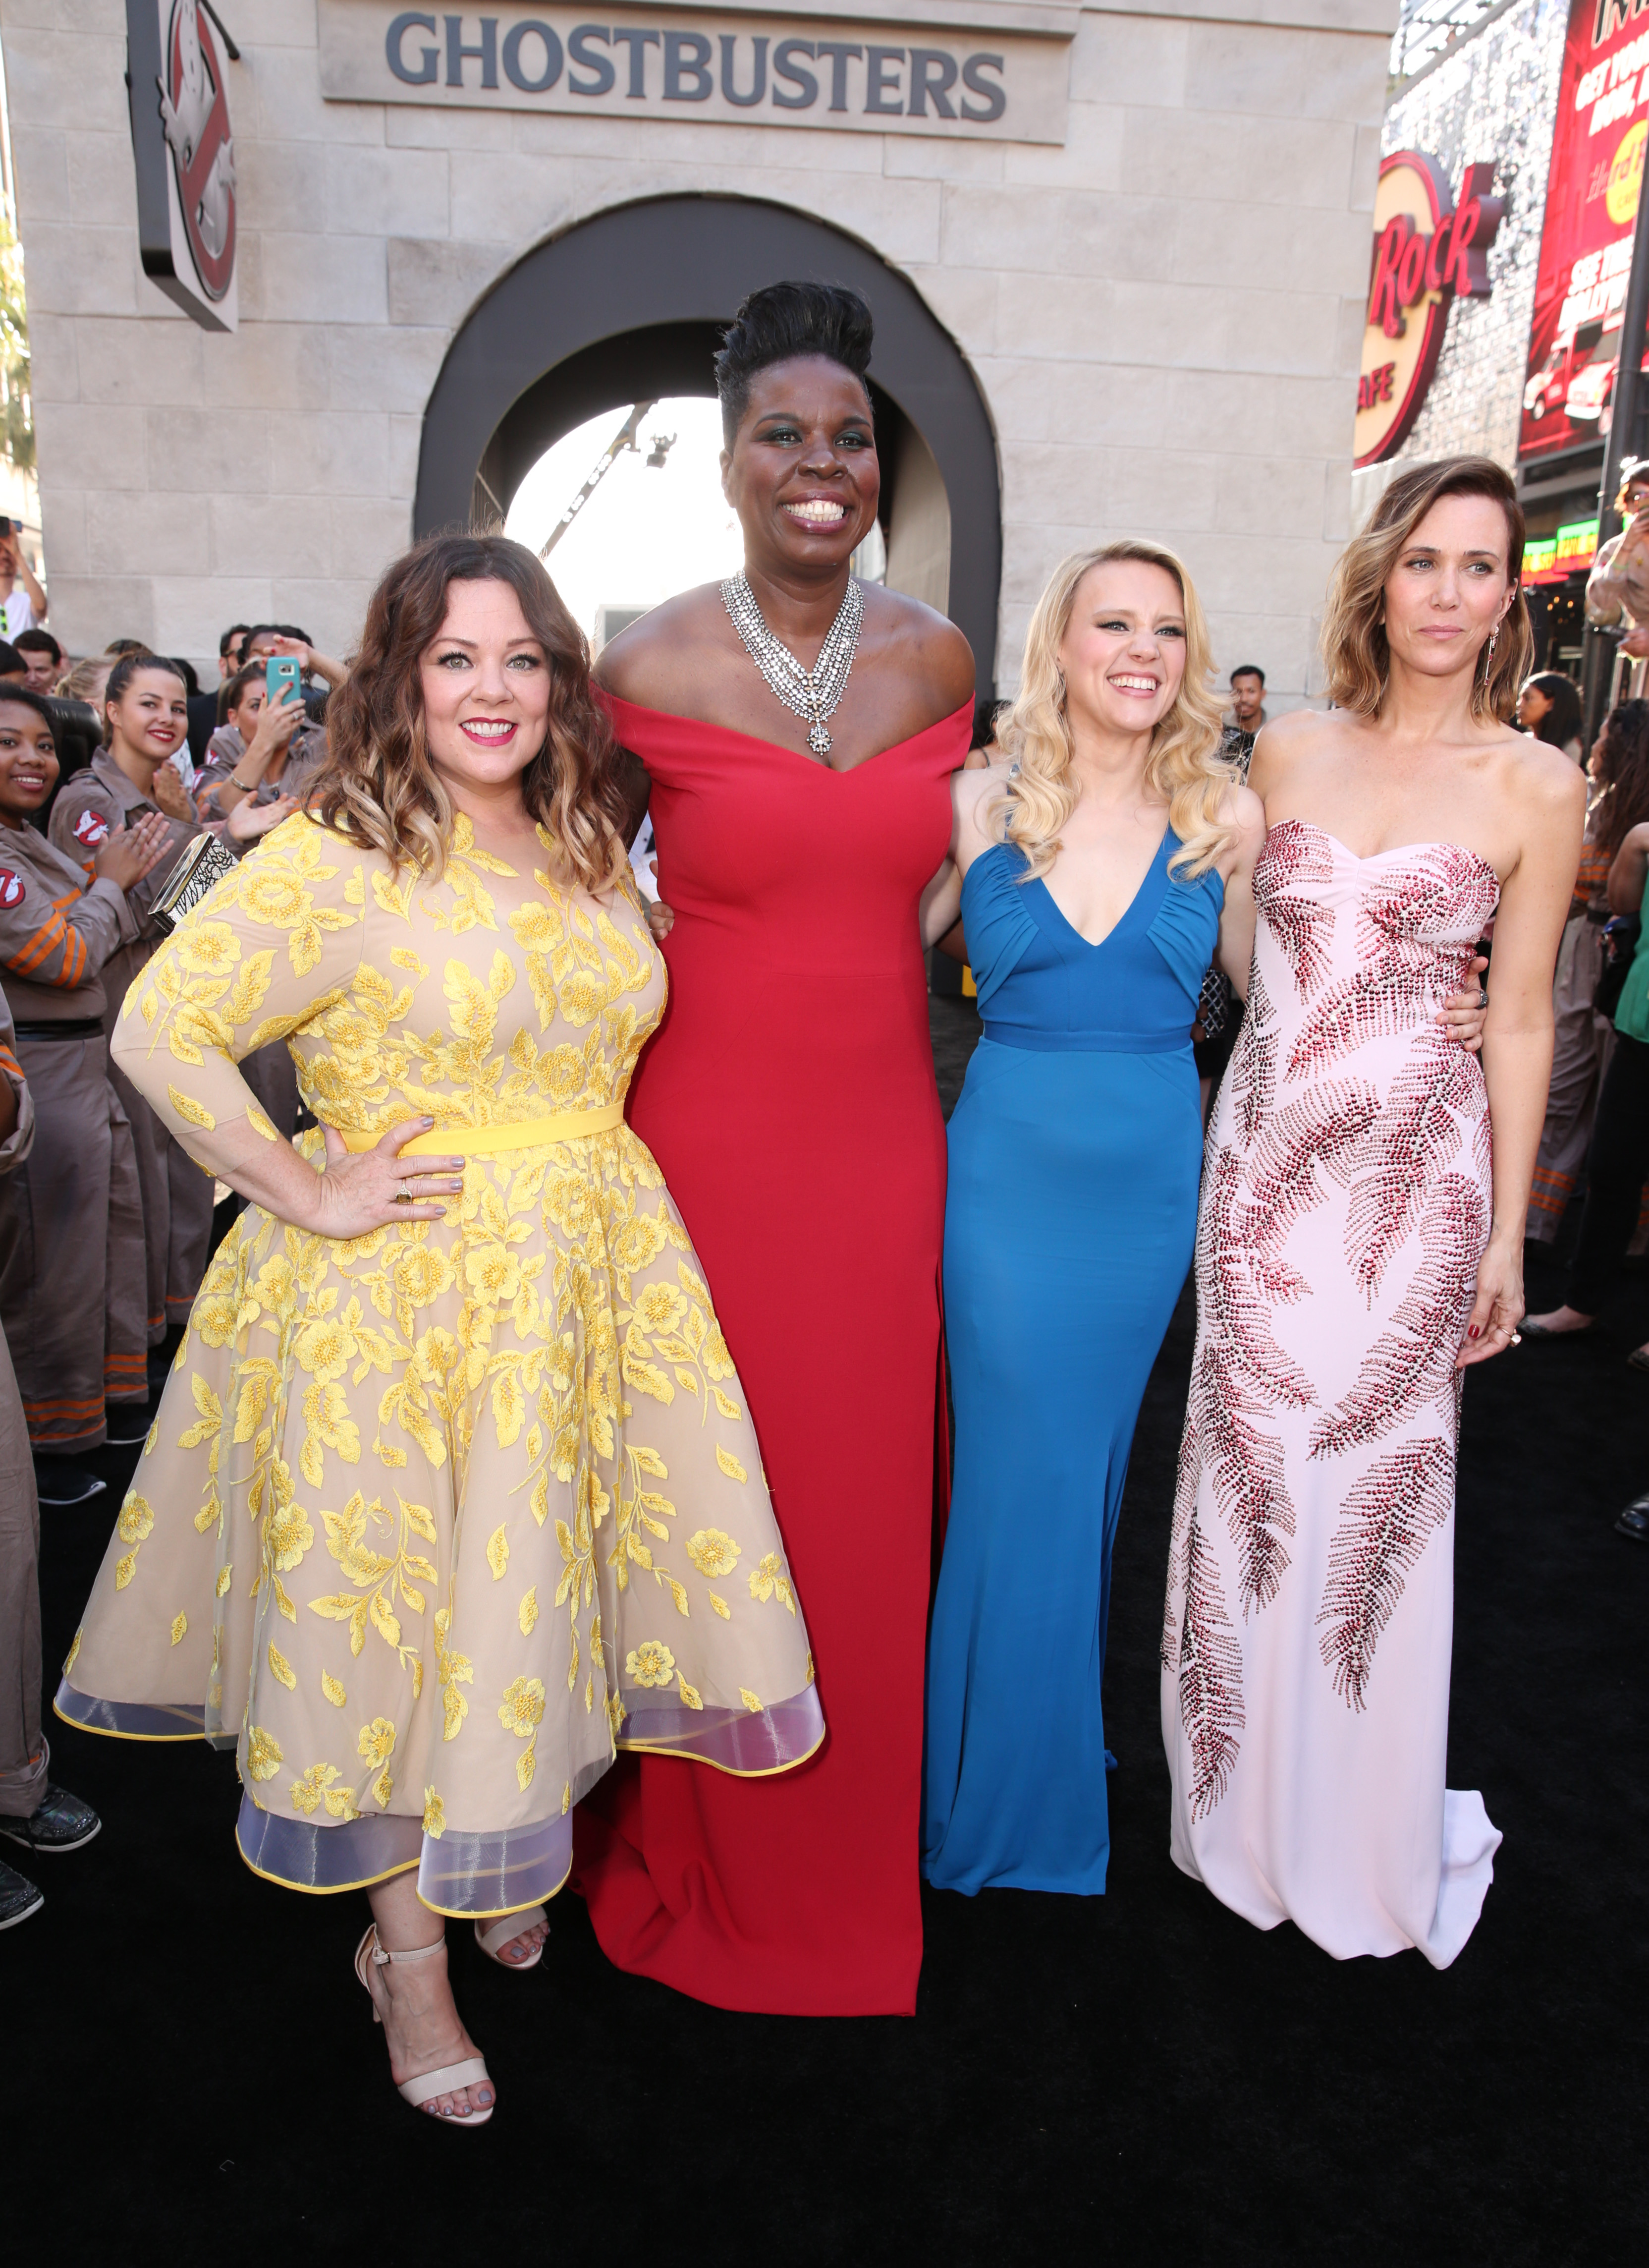 Ghostbusters reboot cast Getty Images